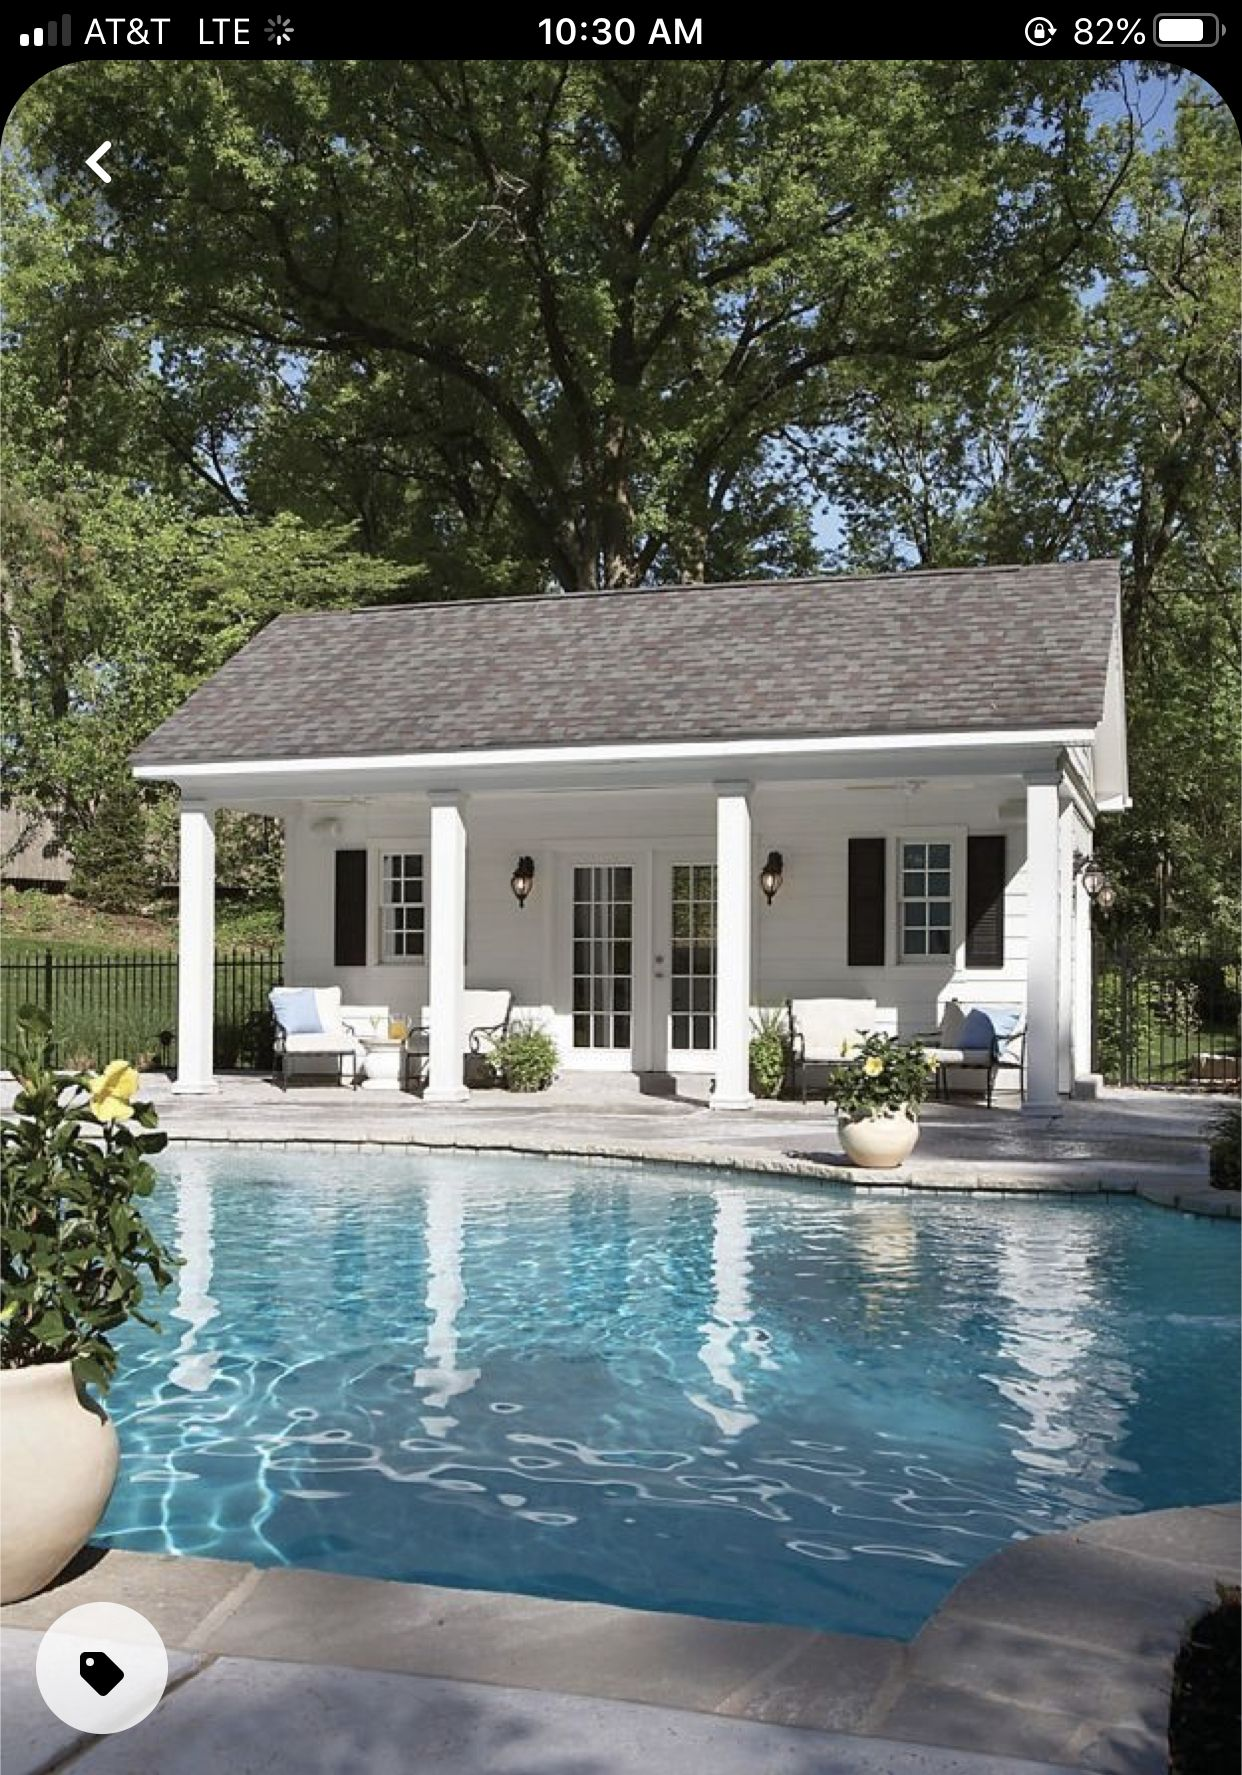 Pin By Anna Siebenhuener On Four Daughters Manor In 2020 Small Pool Houses Pool House Shed Pool House Designs